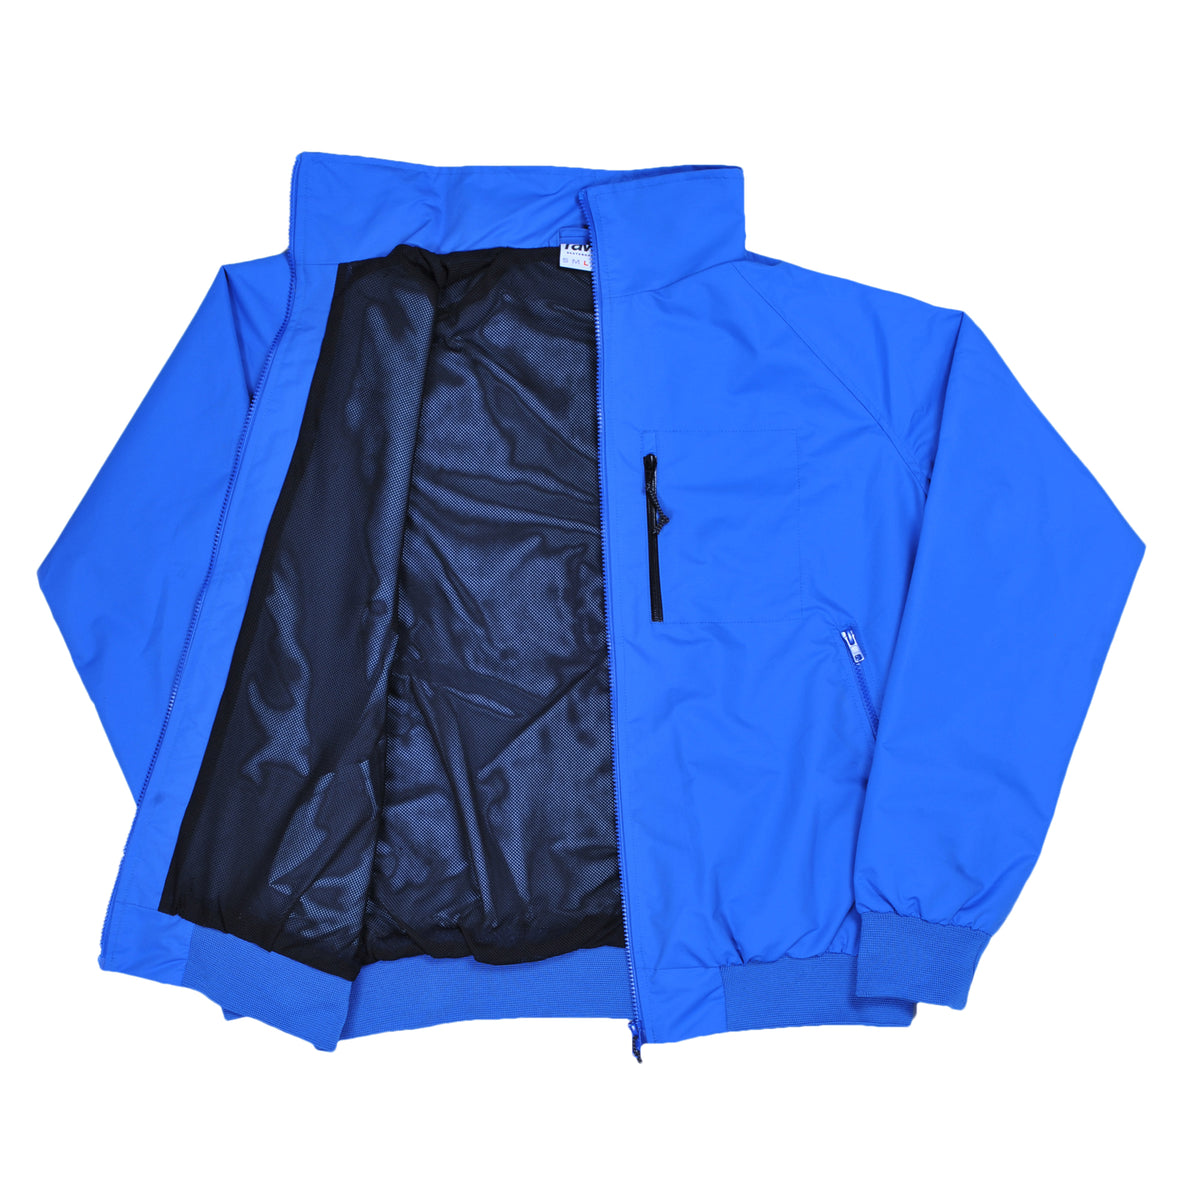 RAVE WATERPROOF royal blue jacket - RAVE skateboards